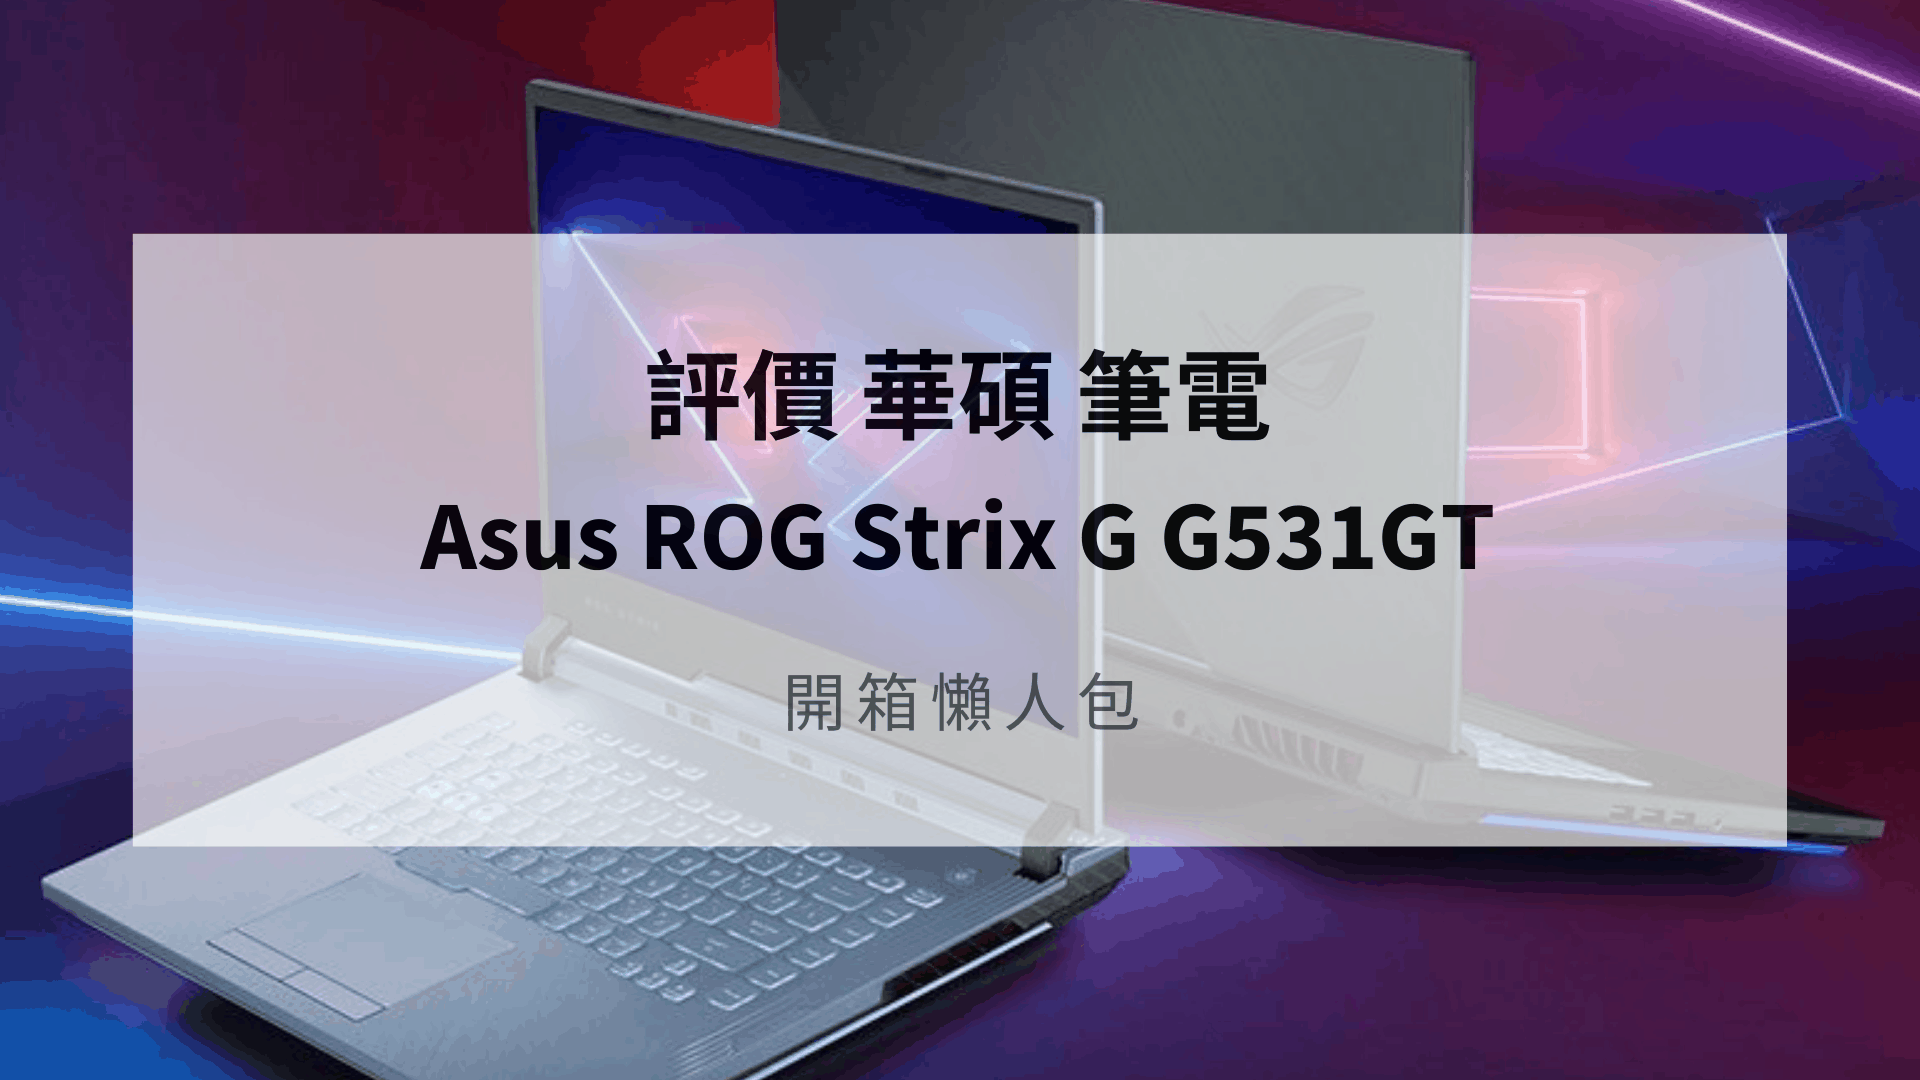 asus g531gt 評價